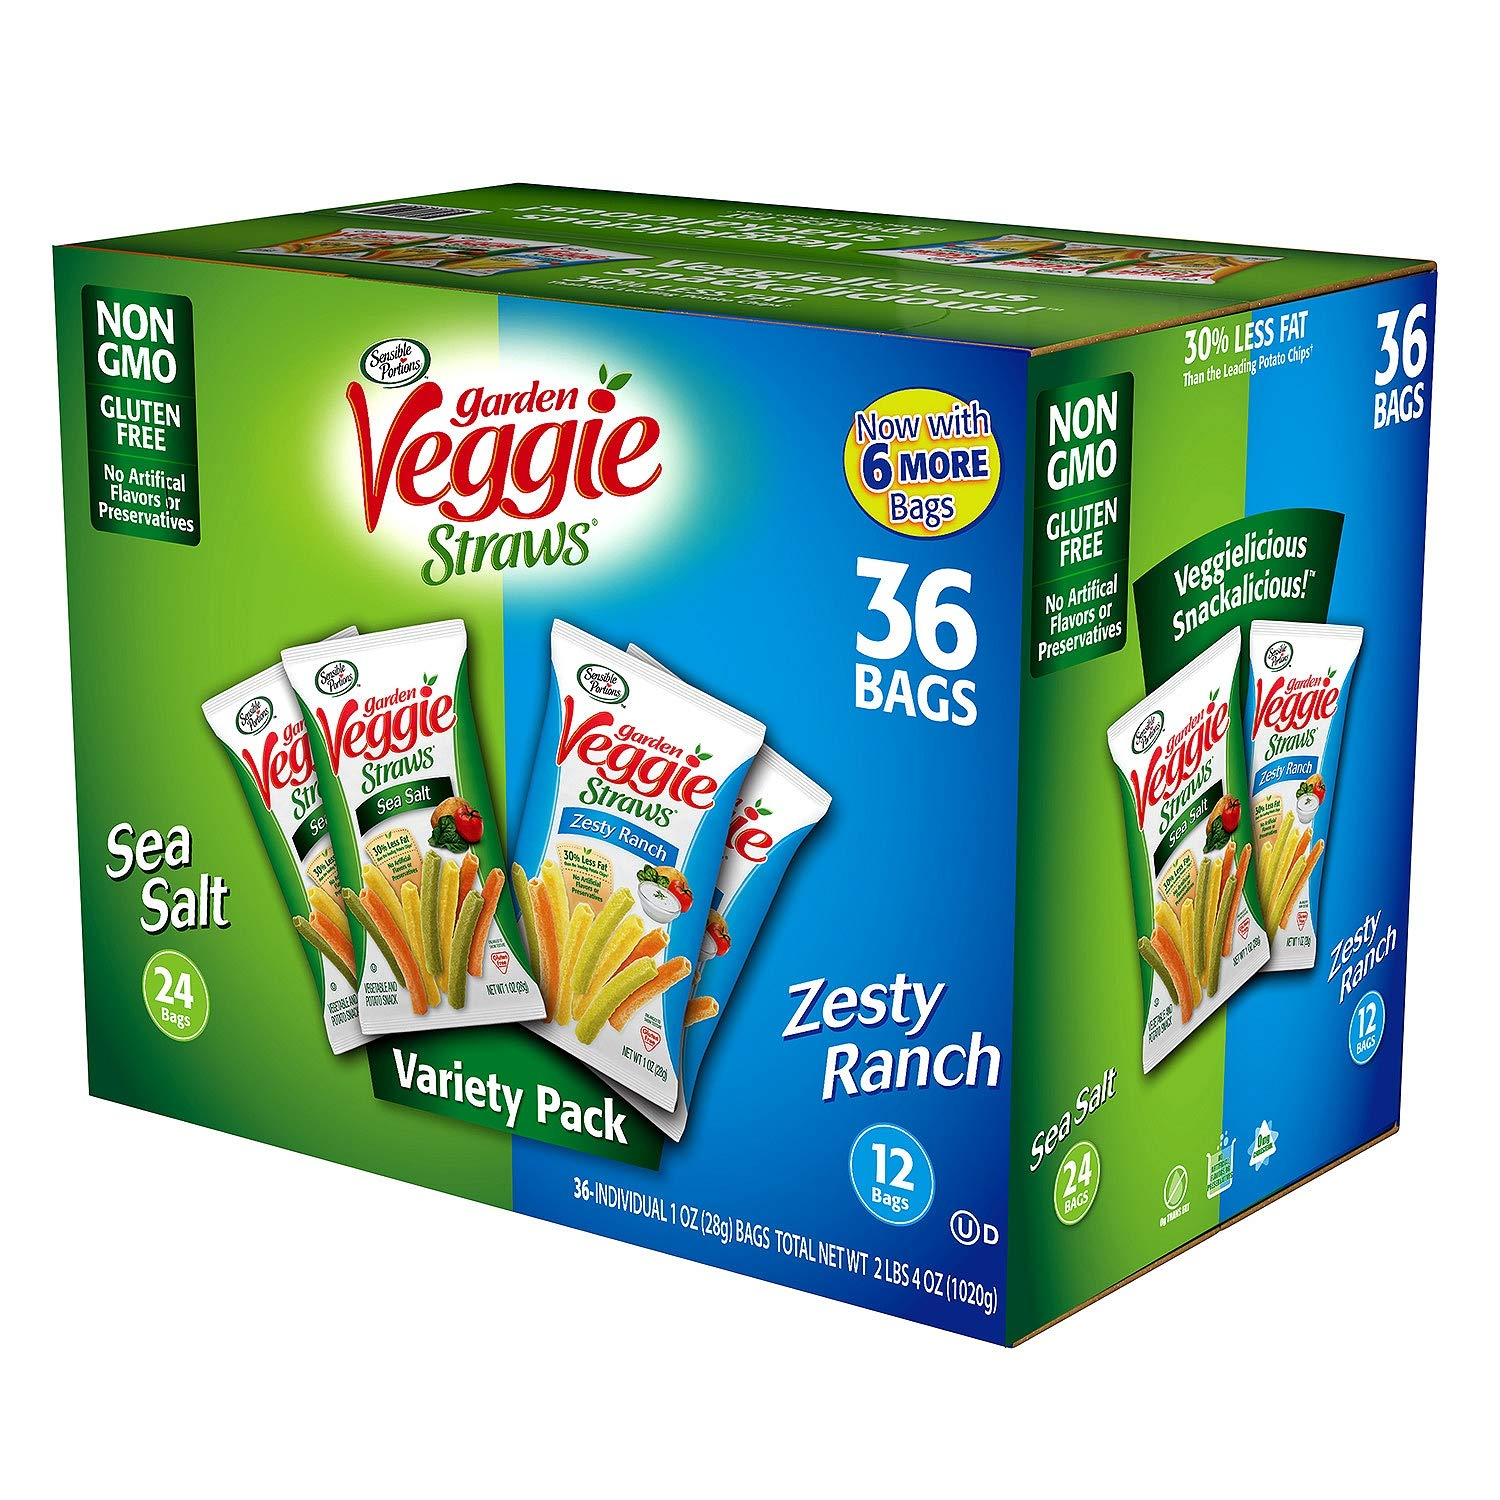 Sensible Portions Veggie Straws Variety Pack 1 oz. each, 36 ct. (pack of 4) A1